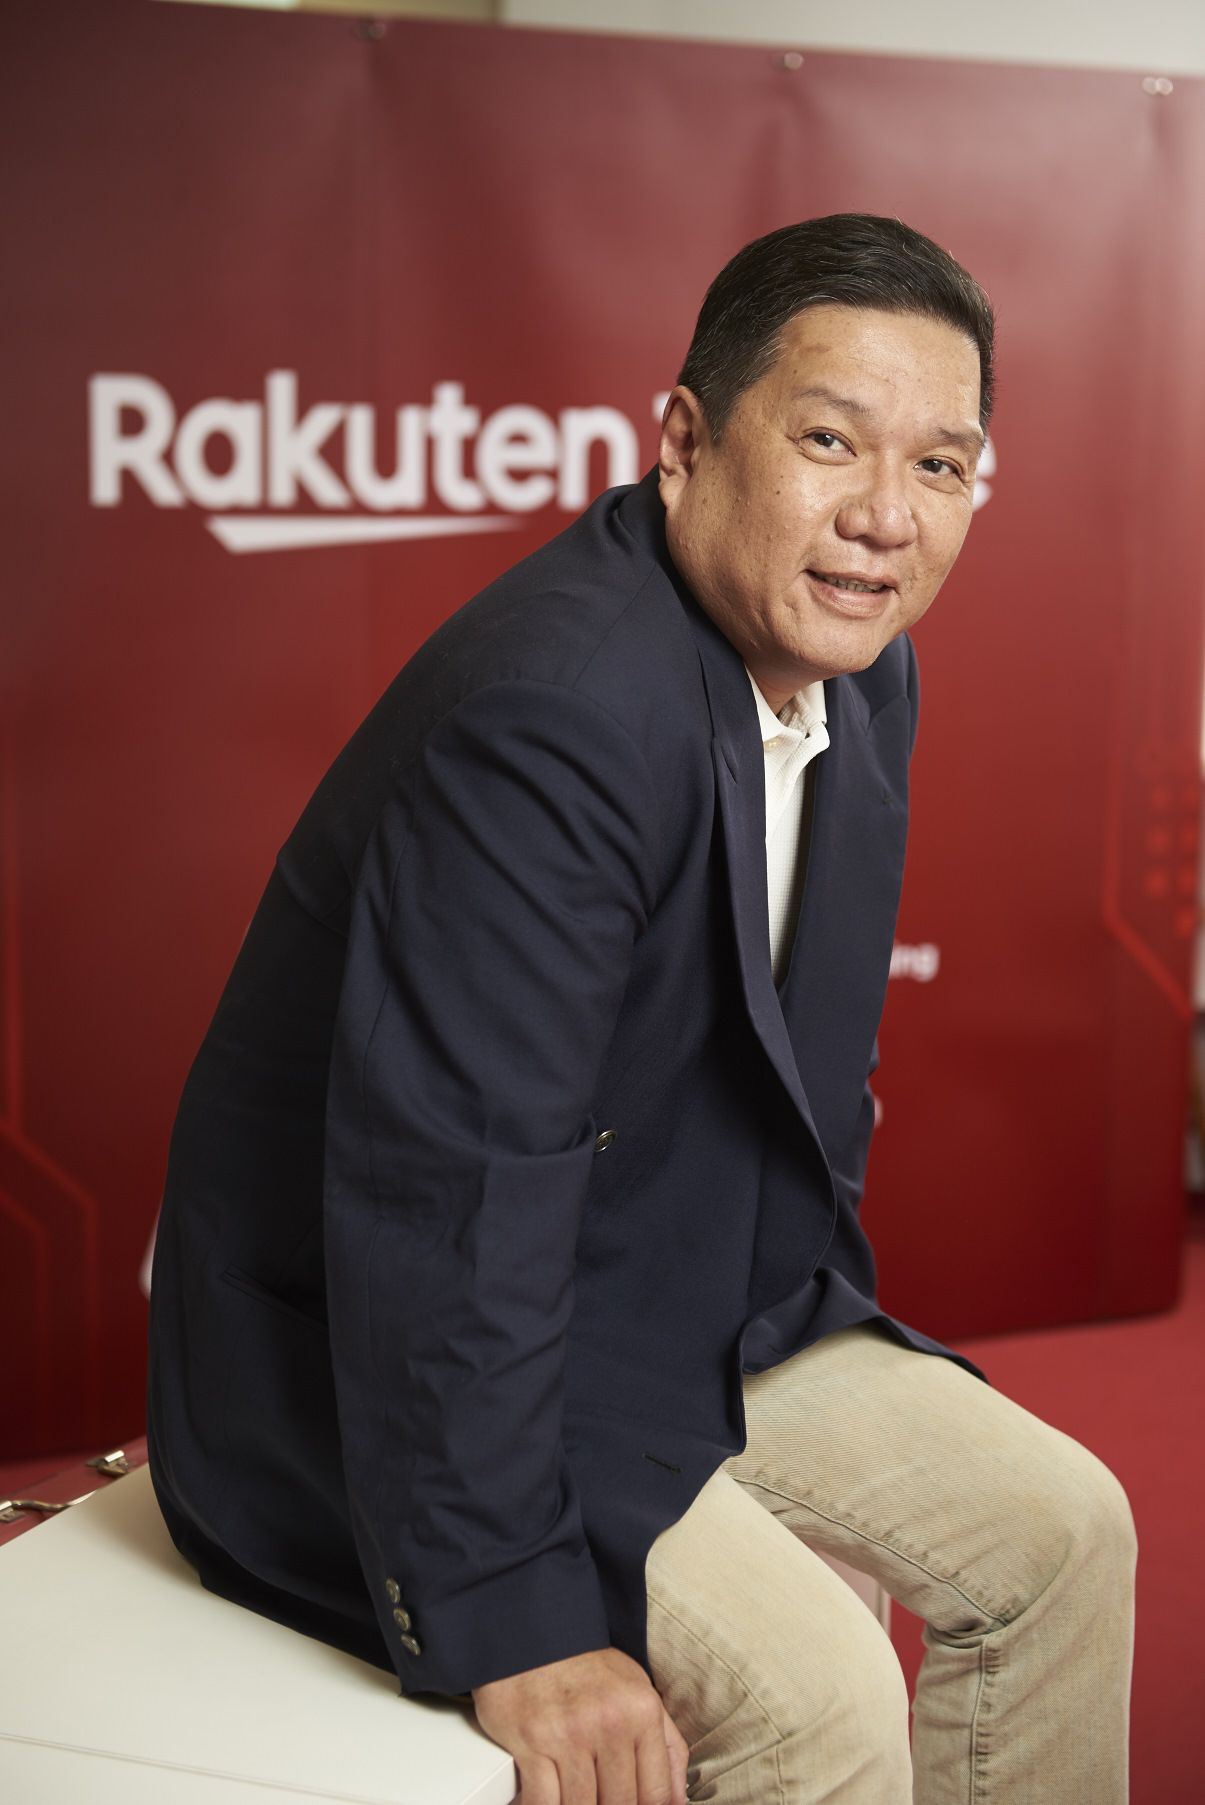 Rakuten Trade head of research Kenny Yee cautions that stock markets were highly susceptible for another sell-down since prevailing negative news have overshadowed that of the positives.